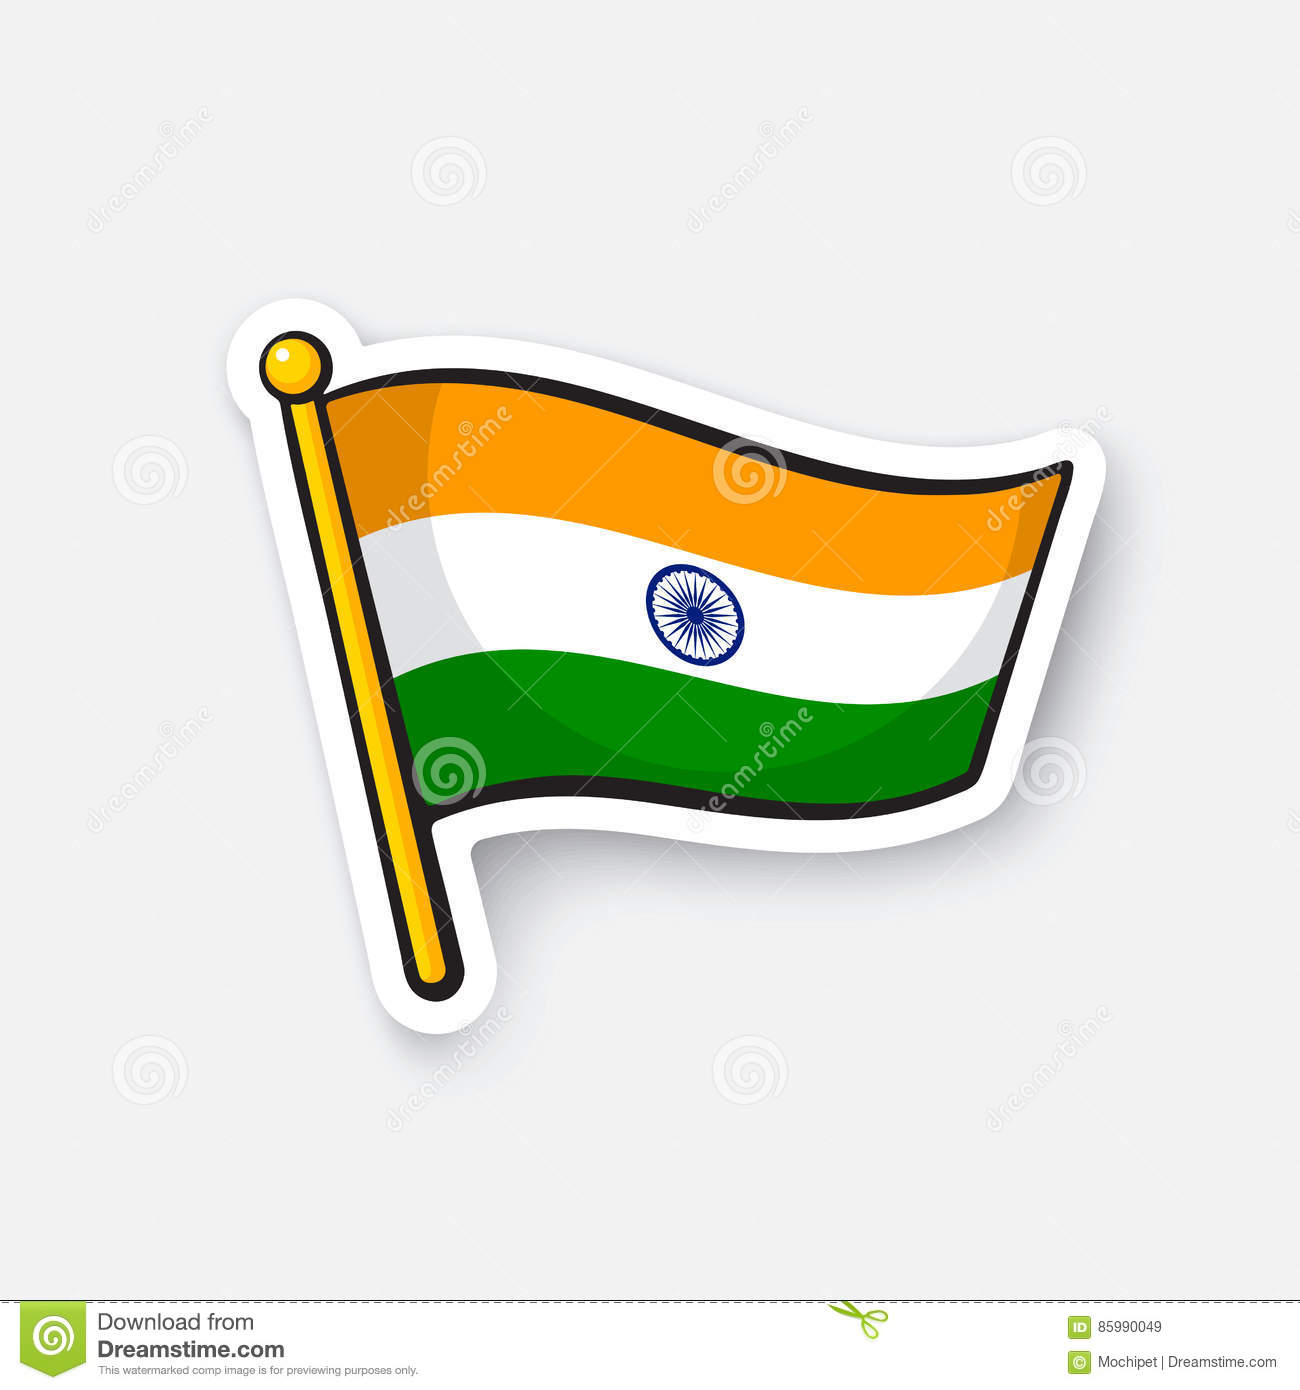 Sticker flag of india on flagstaff